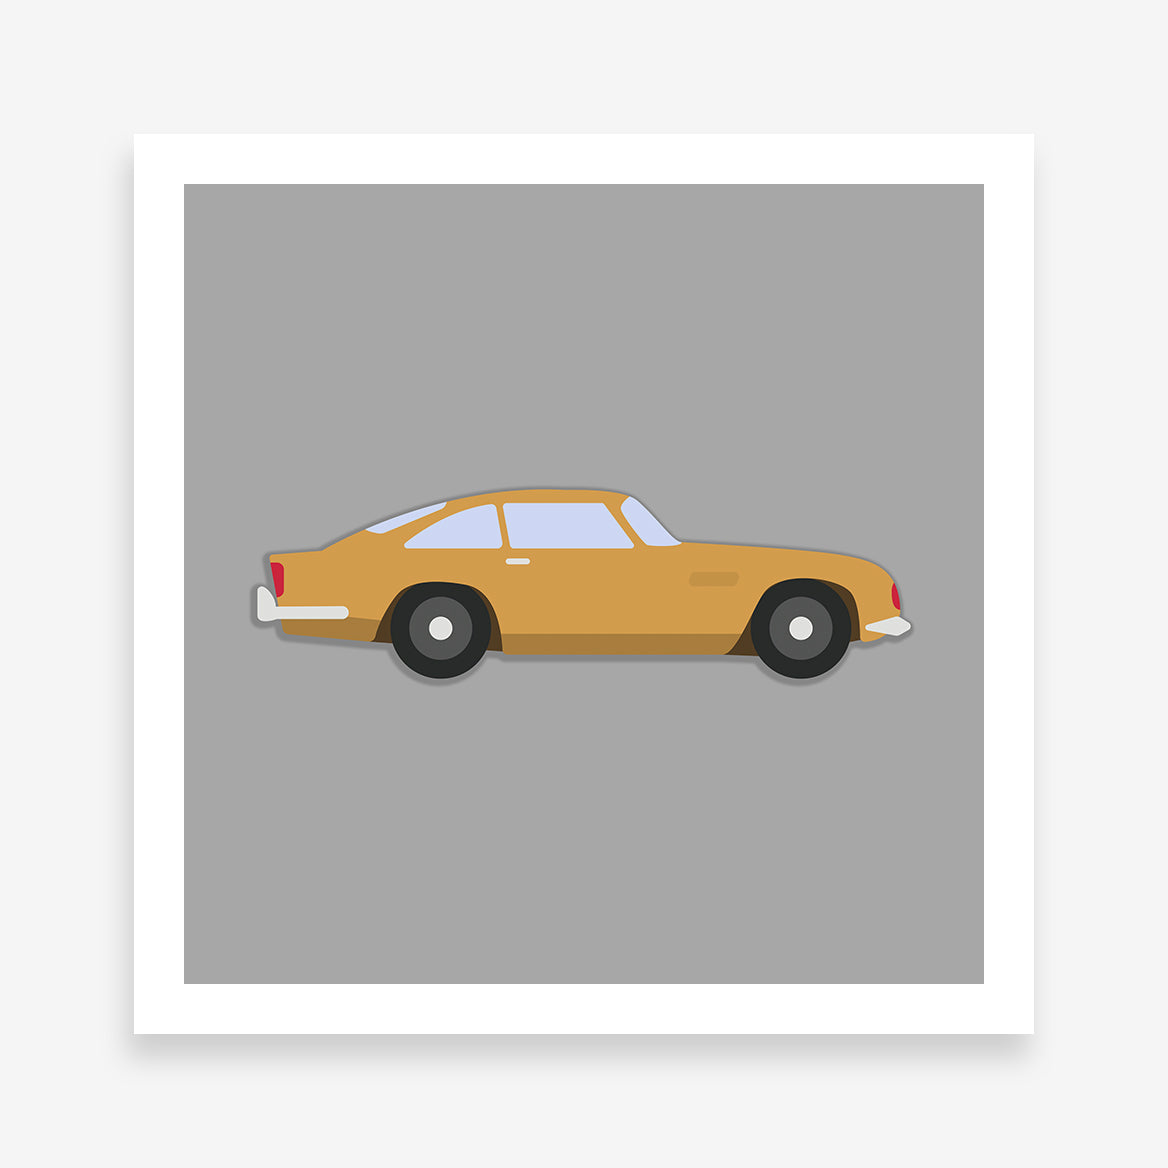 Poster print with a yellow classic car on a grey background.